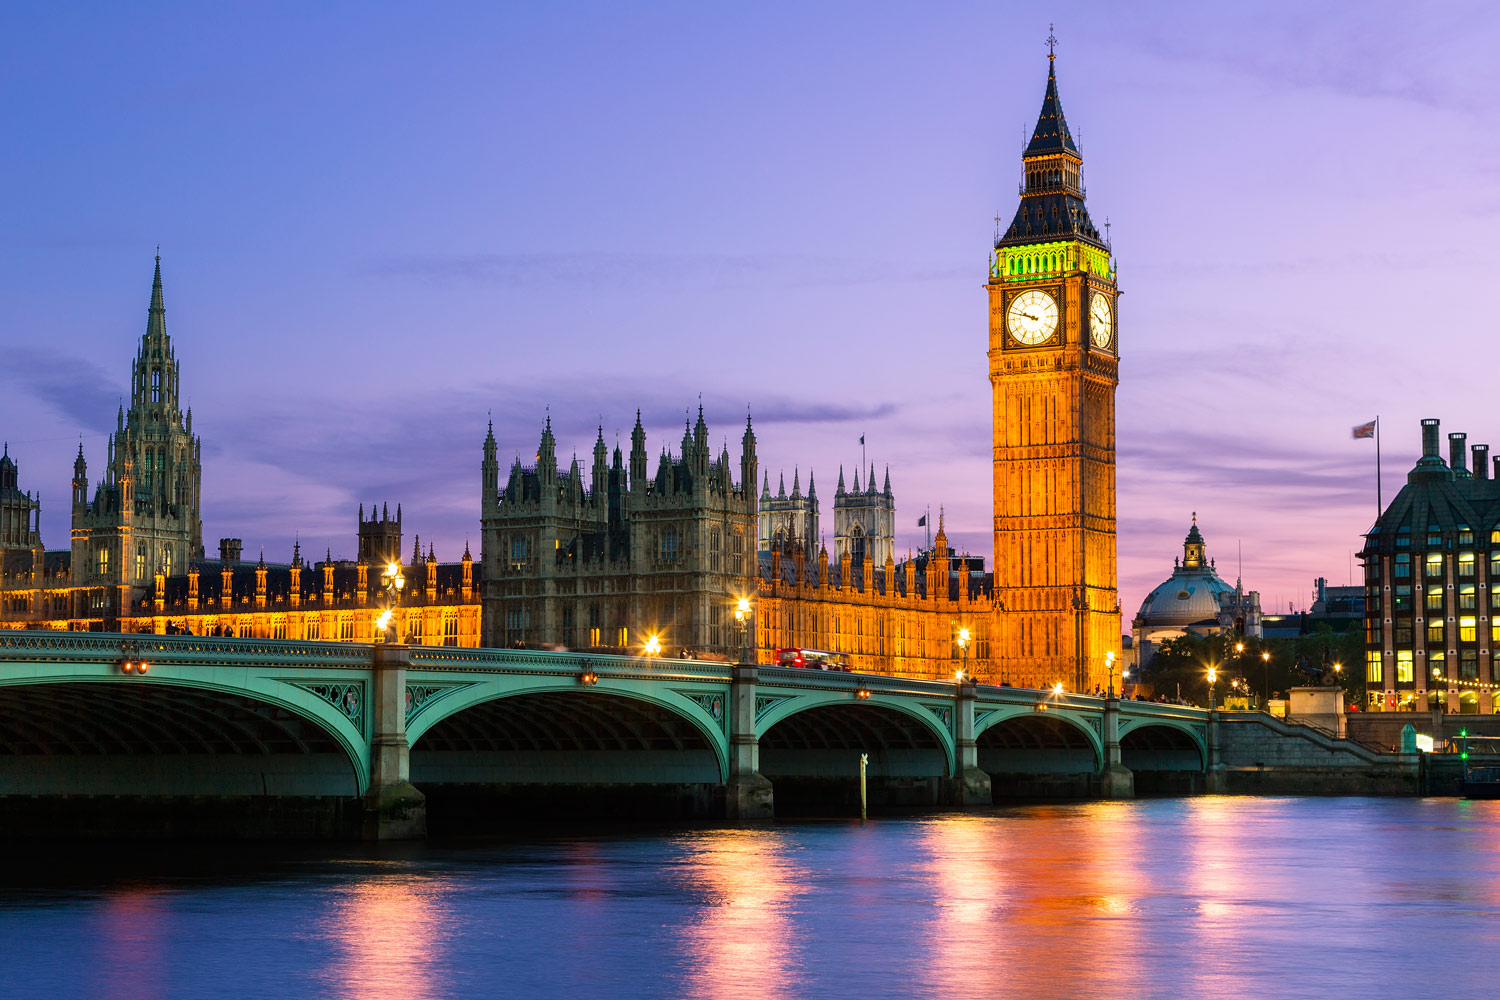 Best Online Stores For Home Decor London S Big Ben Facing Disrepair Big Ben Clock Tower